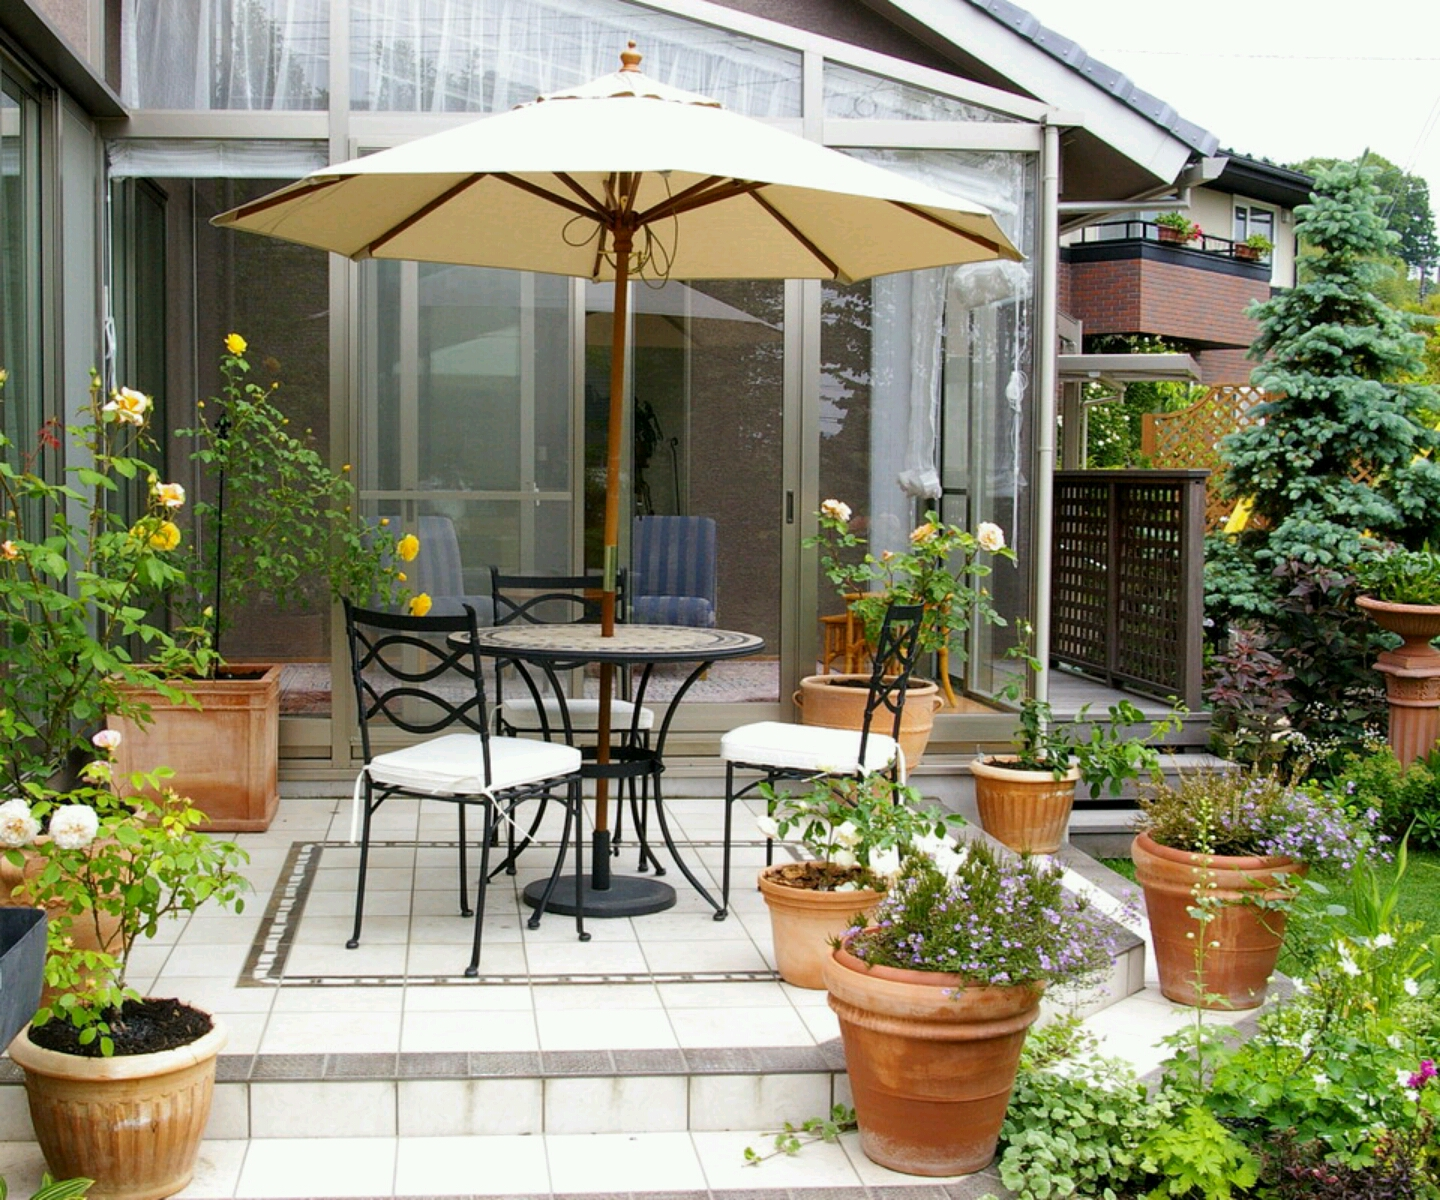 home garden design ideas photo - 5